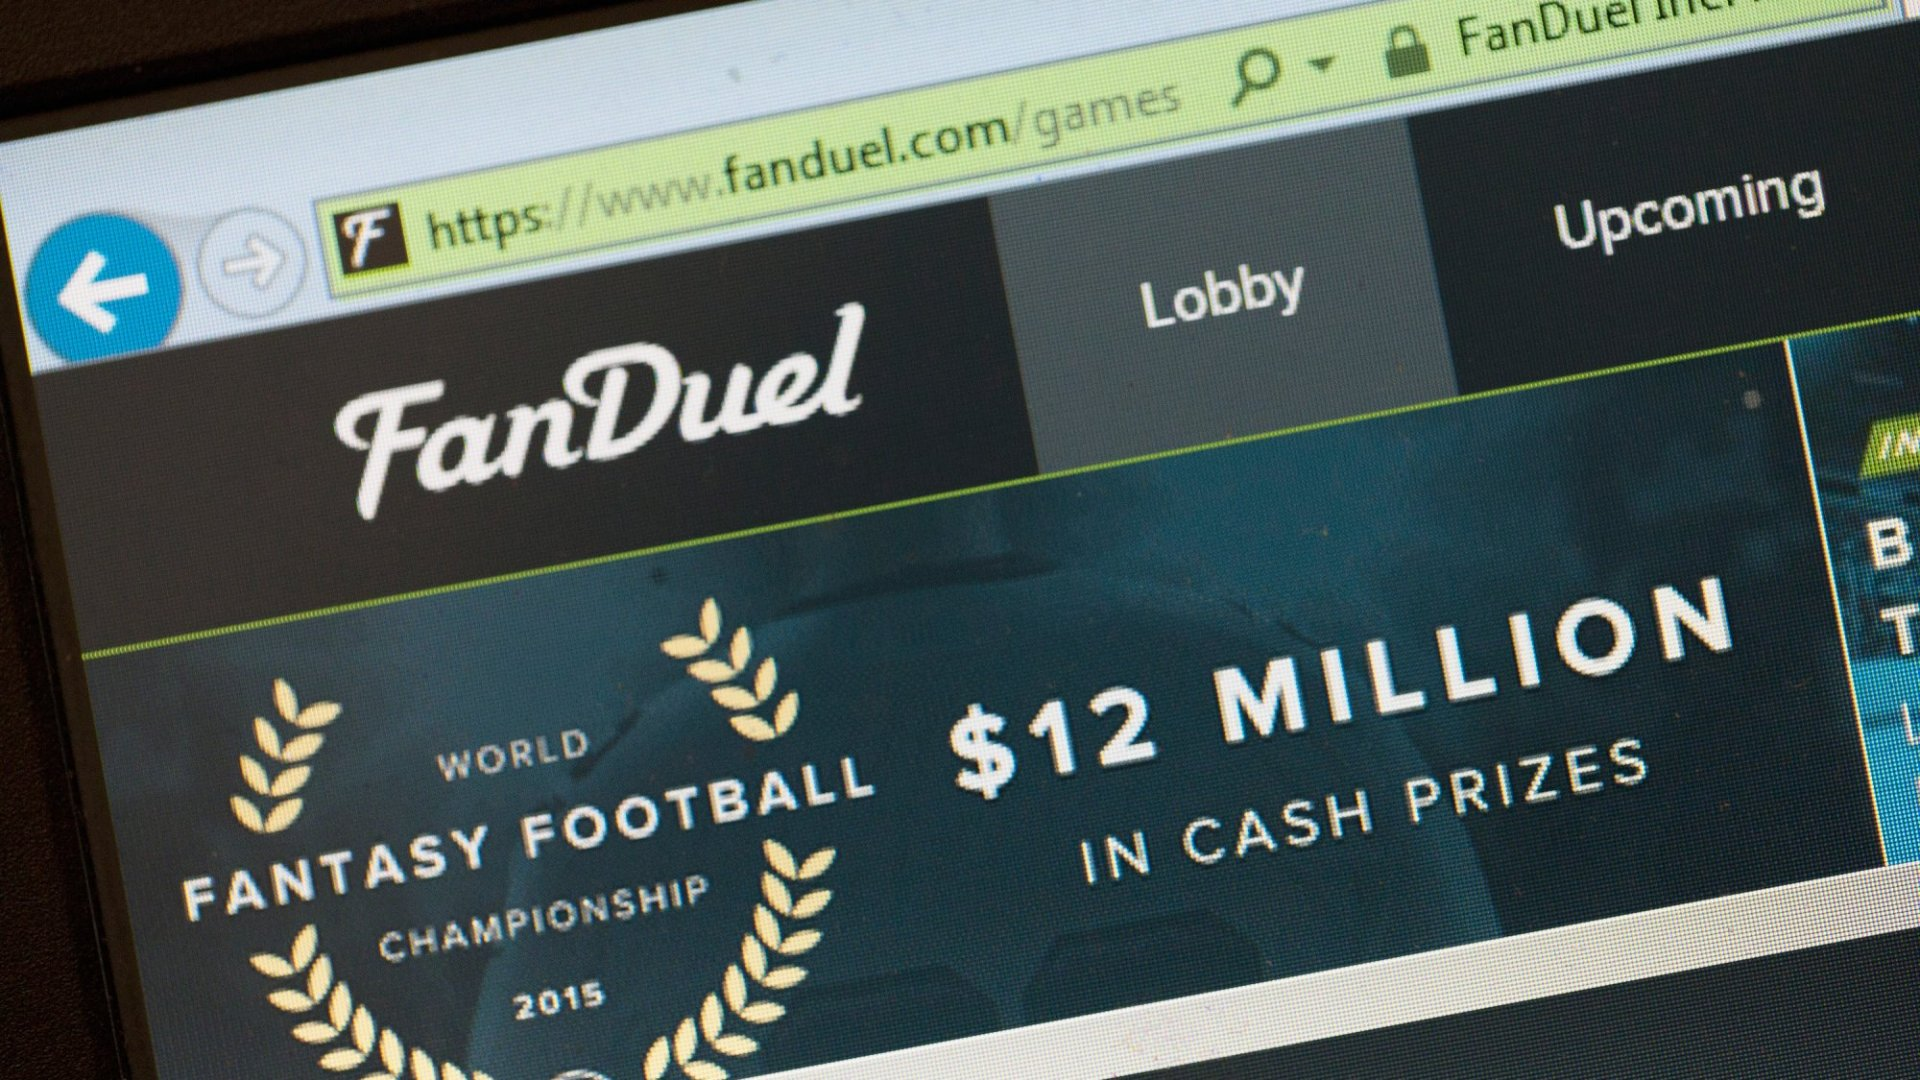 48 Hours After the Supreme Court Opens the Way for Legal Sports Gambling, FanDuel Lands a Potential Buyer